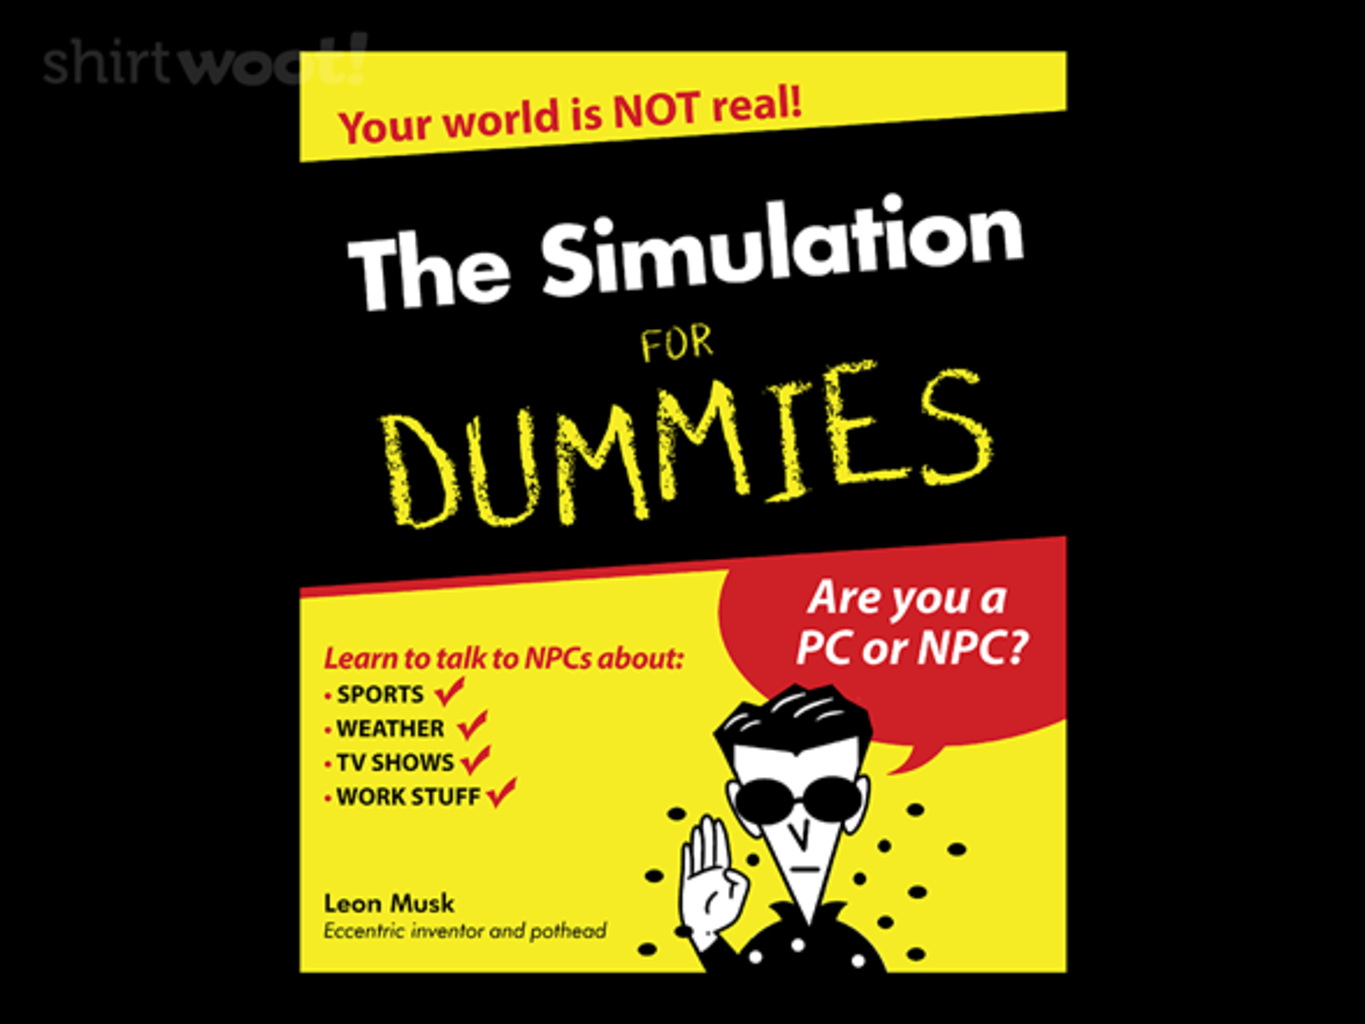 Woot!: The Simulation for Dummies